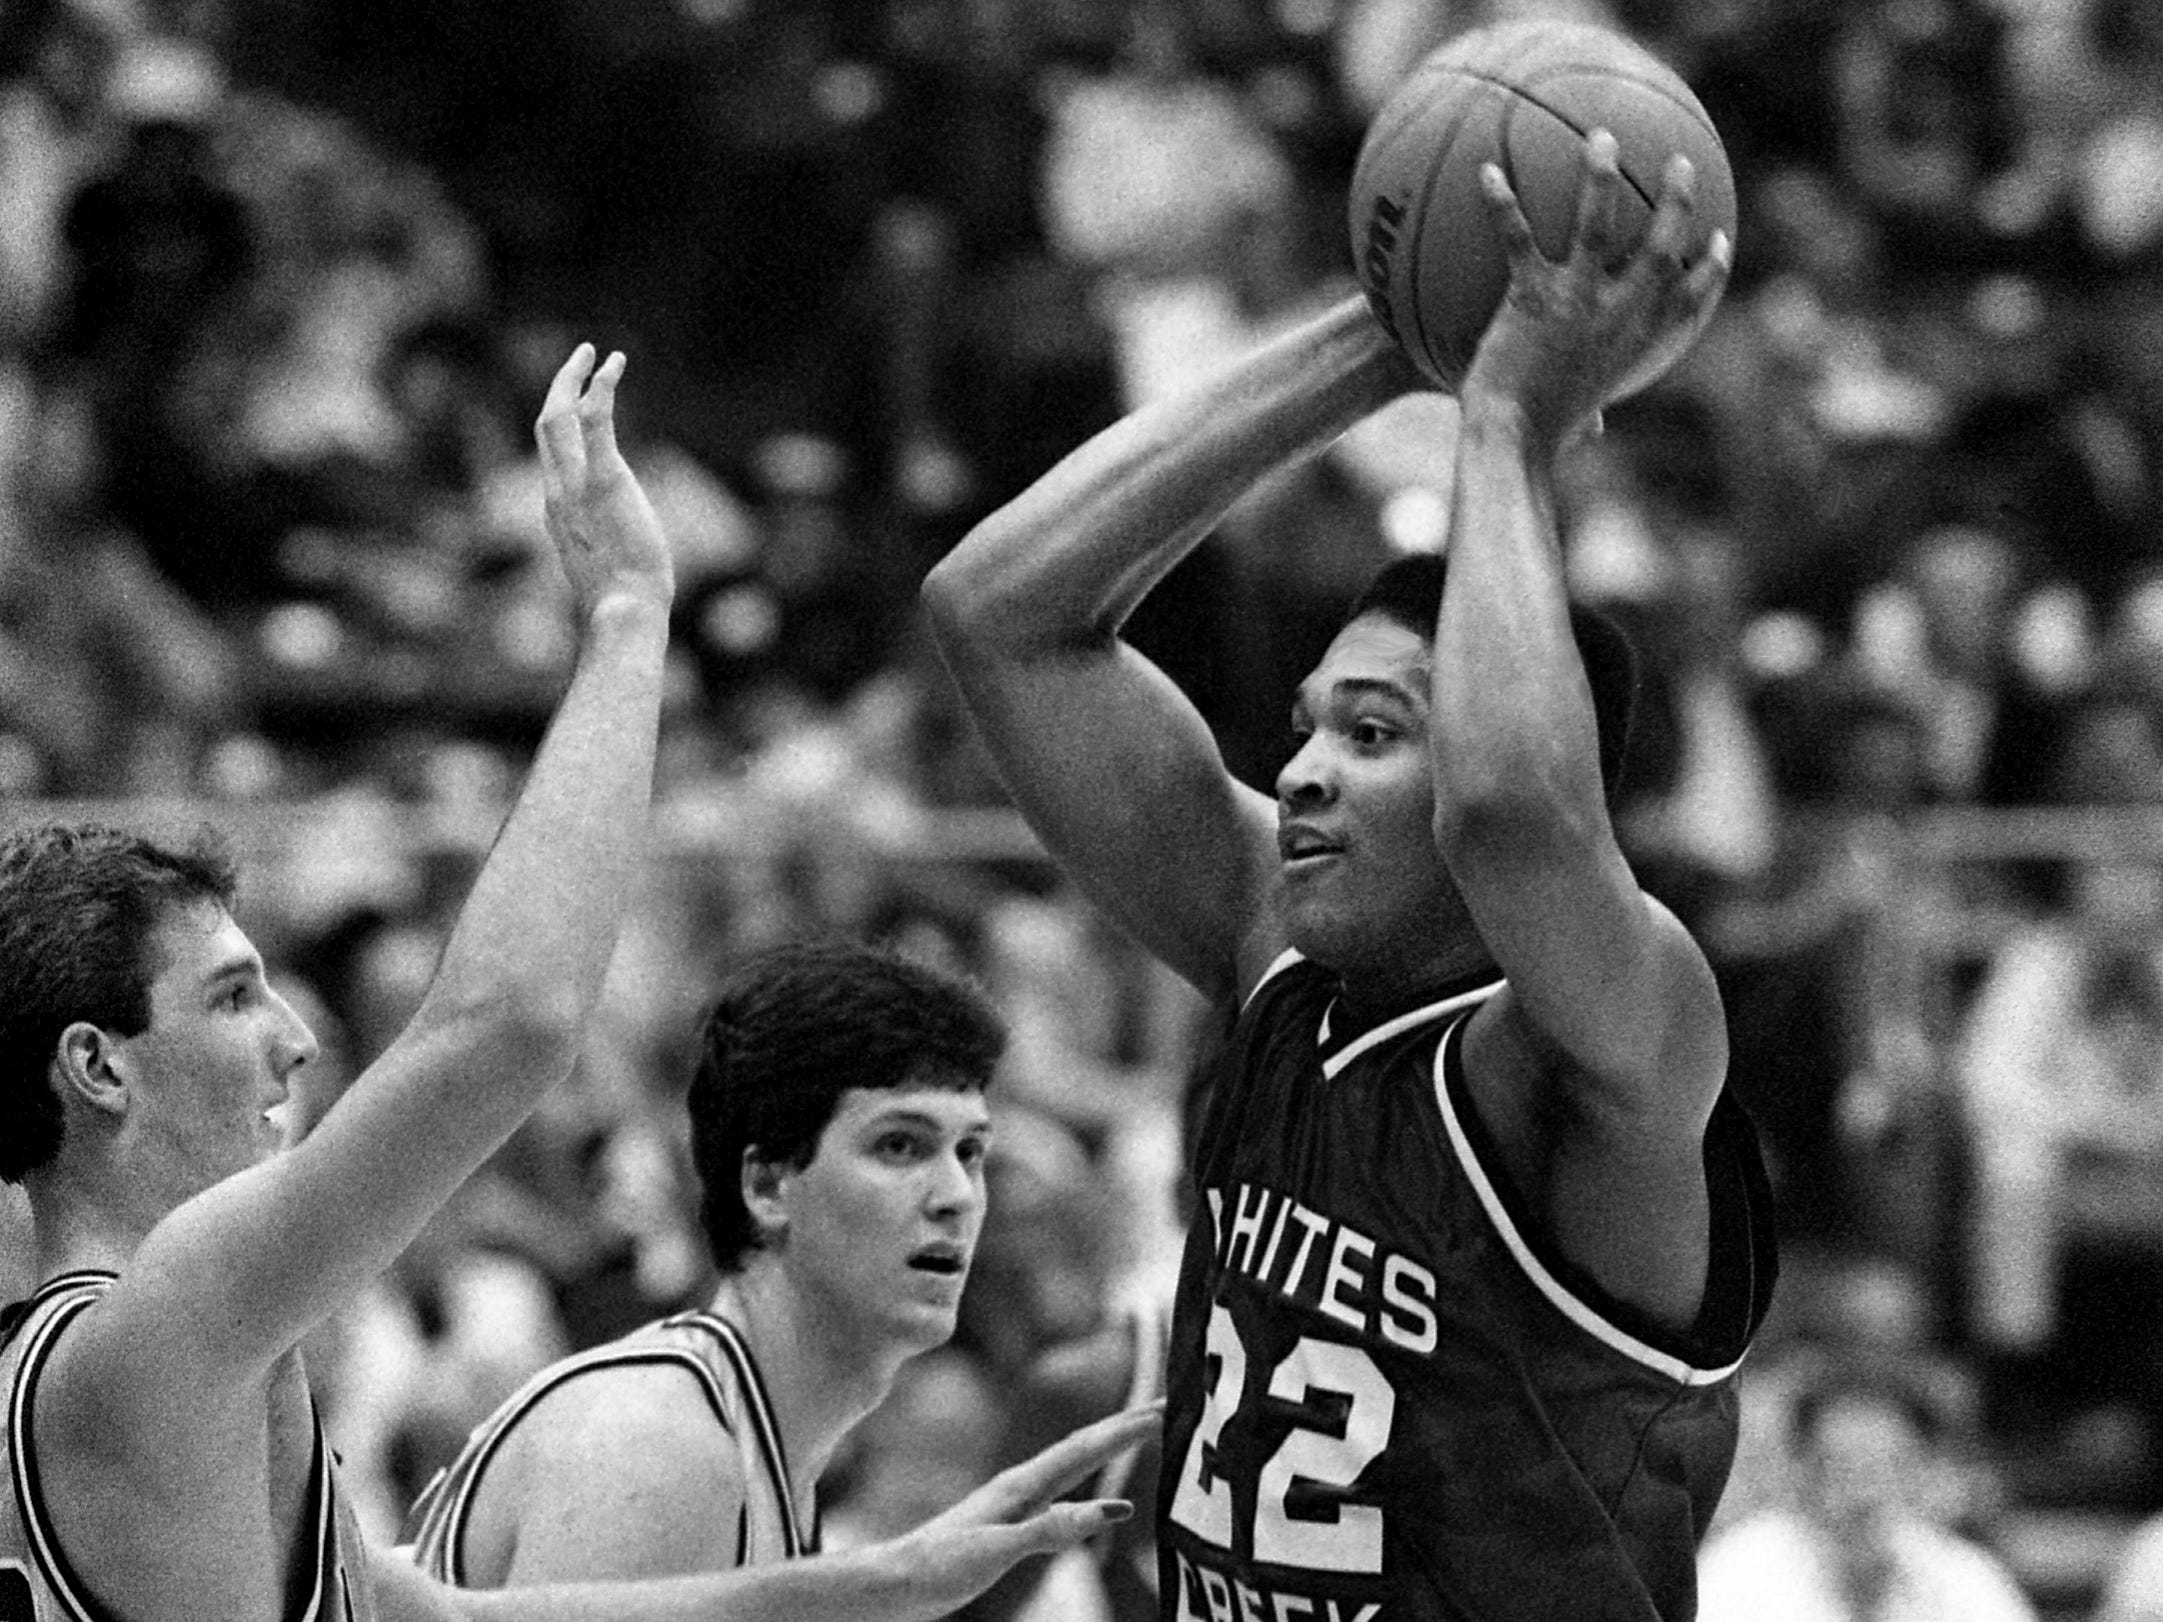 White Creek High's Brian Ward (22) is being hounded by Kevin Anglin, left, and Jay Johnson of Franklin High. Anglin scored 25 points for Franklin to win the TSSAA Class AAA title 43-42 at MTSU's Murphy Center in Murfreesboro on March 18, 1989.